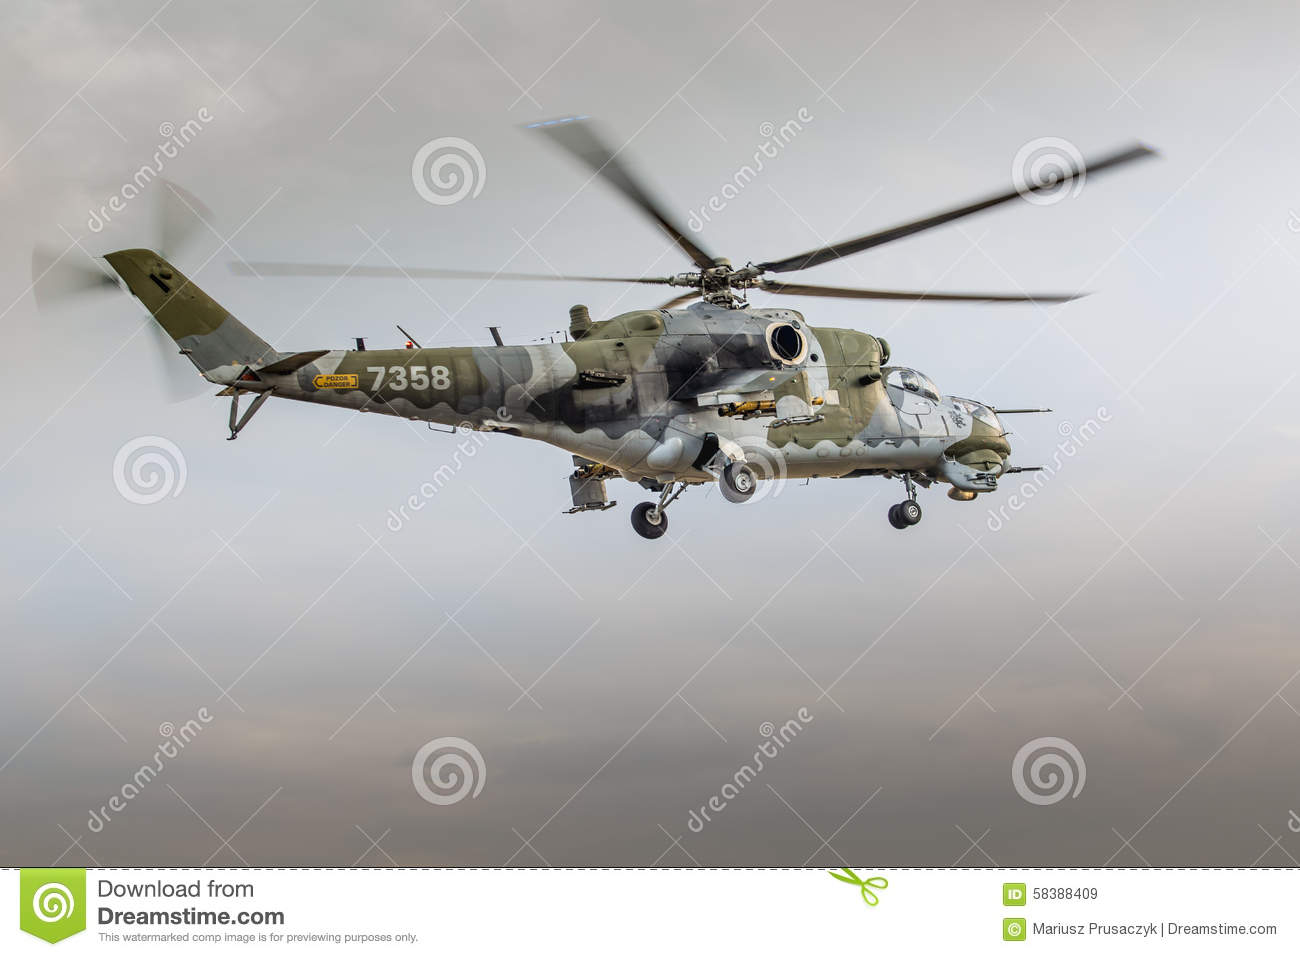 RADOM, POLAND - AUGUST 22: MI-24 Hind display during Air Show 20